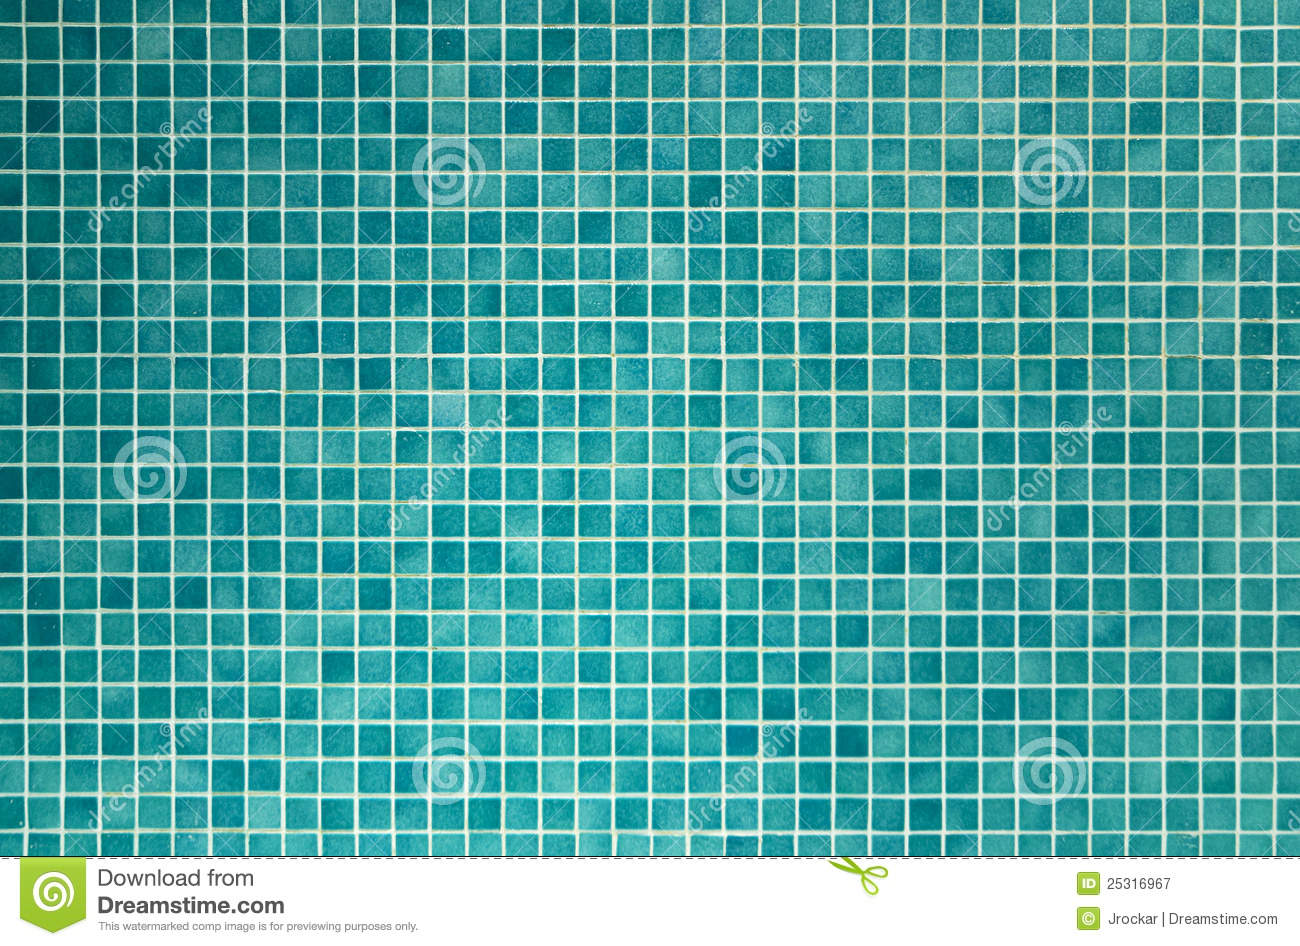 Groene Keuken Accessoires : Blue Green Mosaic Floor Tile for Bathroom